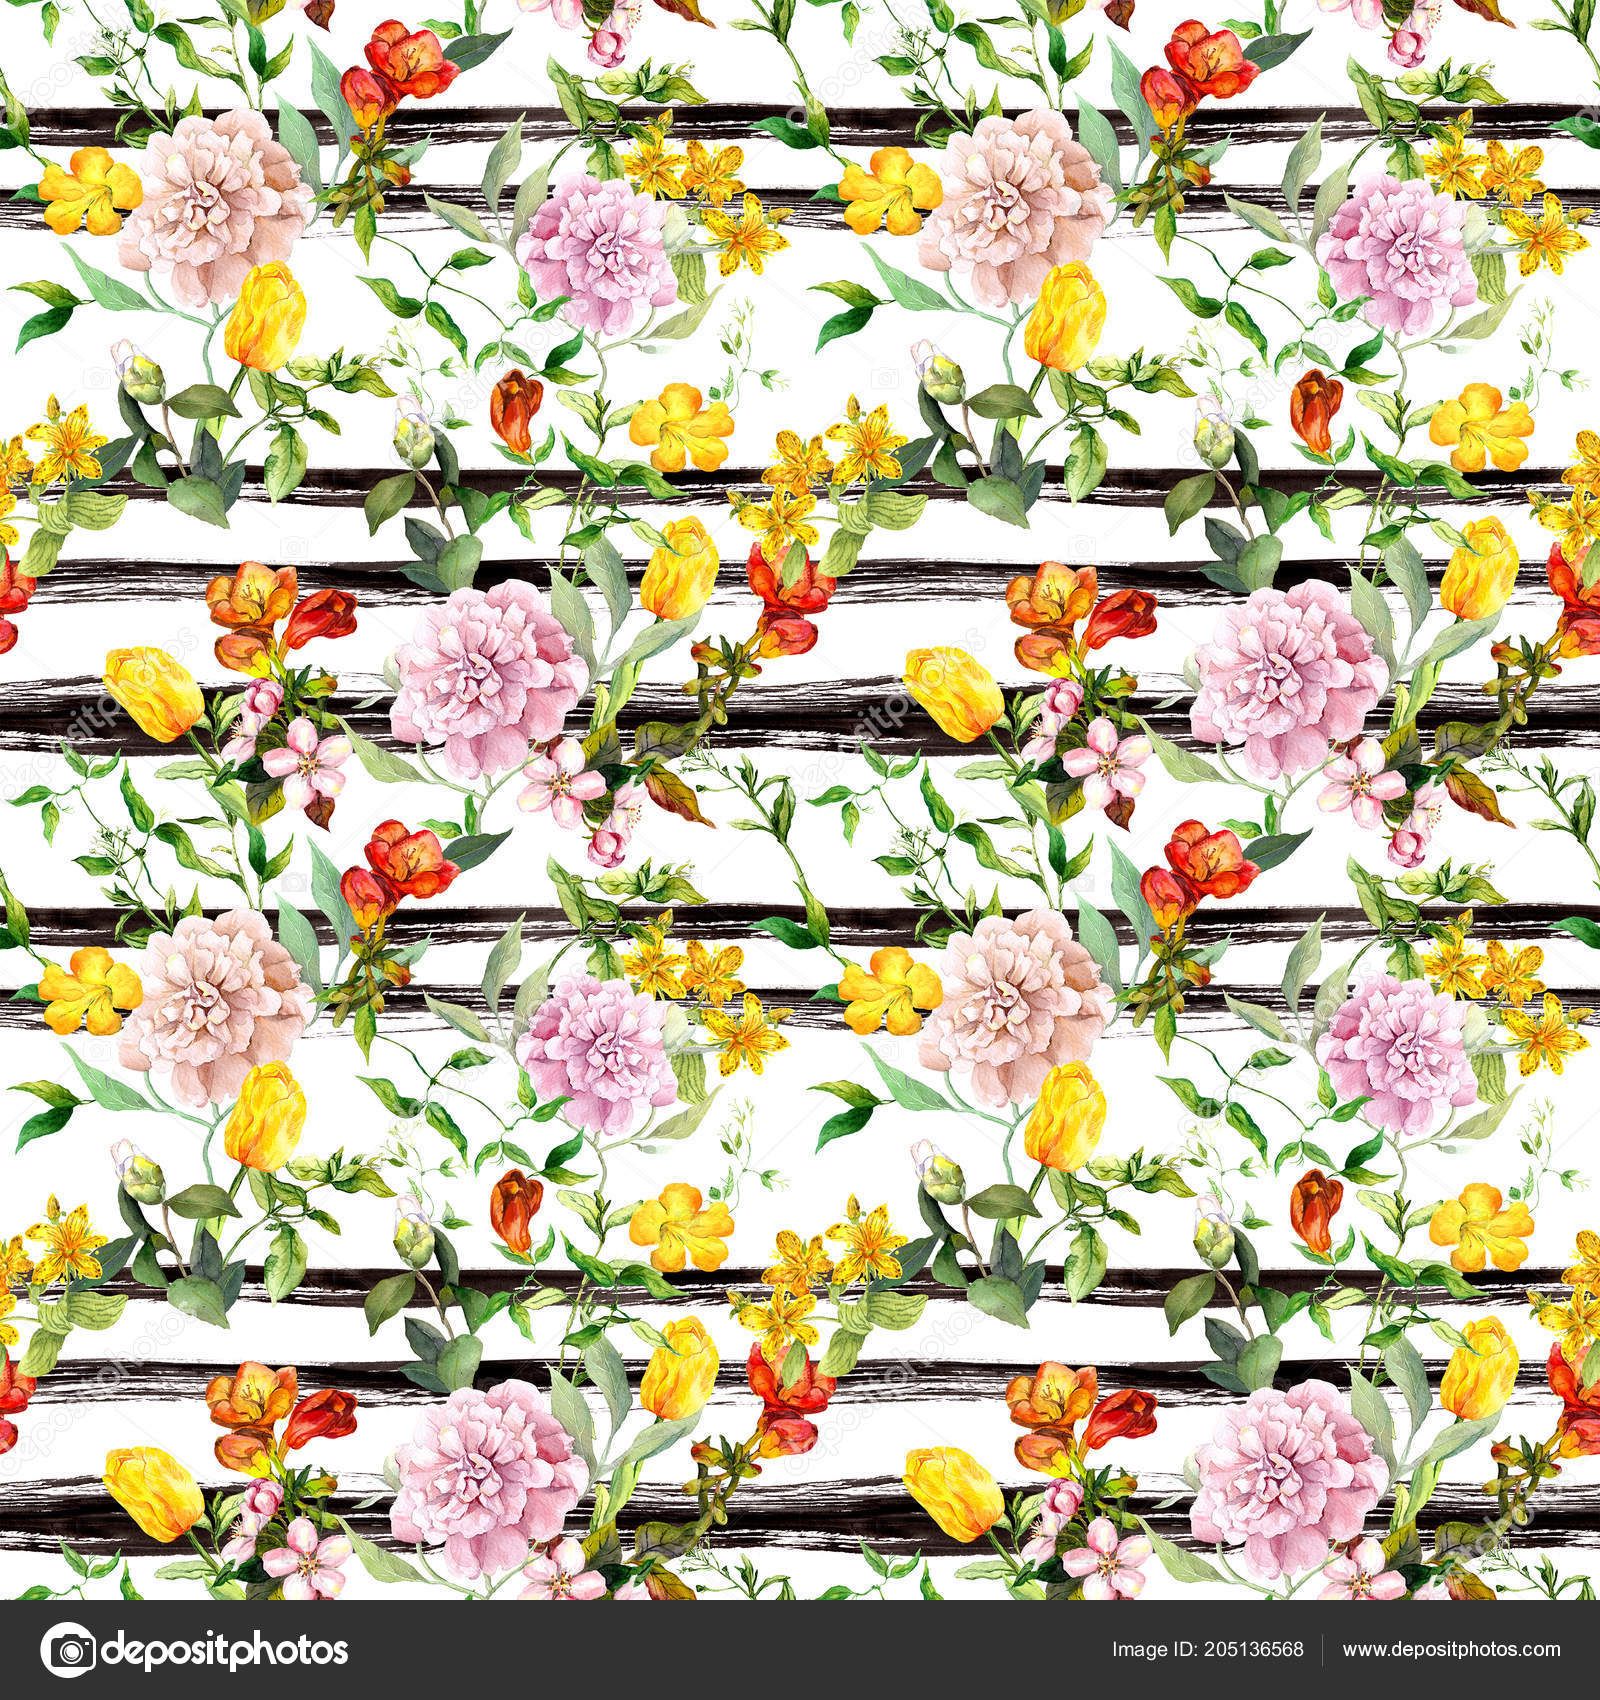 Flowers At Black White Striped Background Repeating Floral